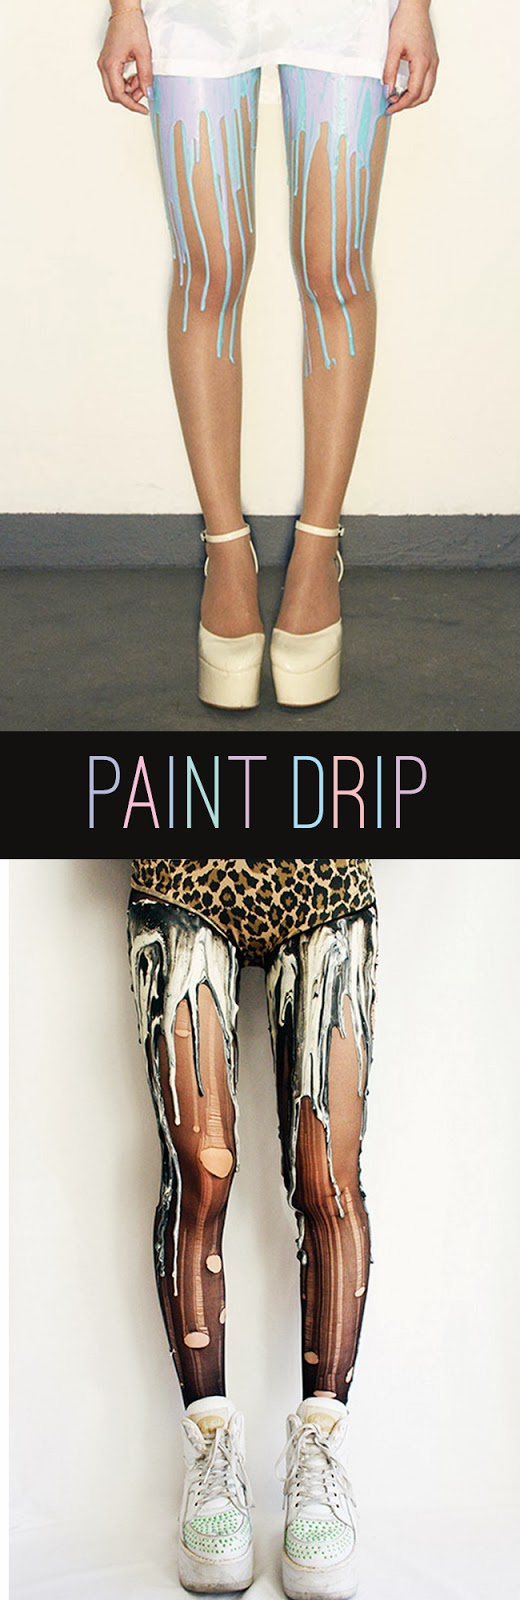 Melting Paint Drip Tights